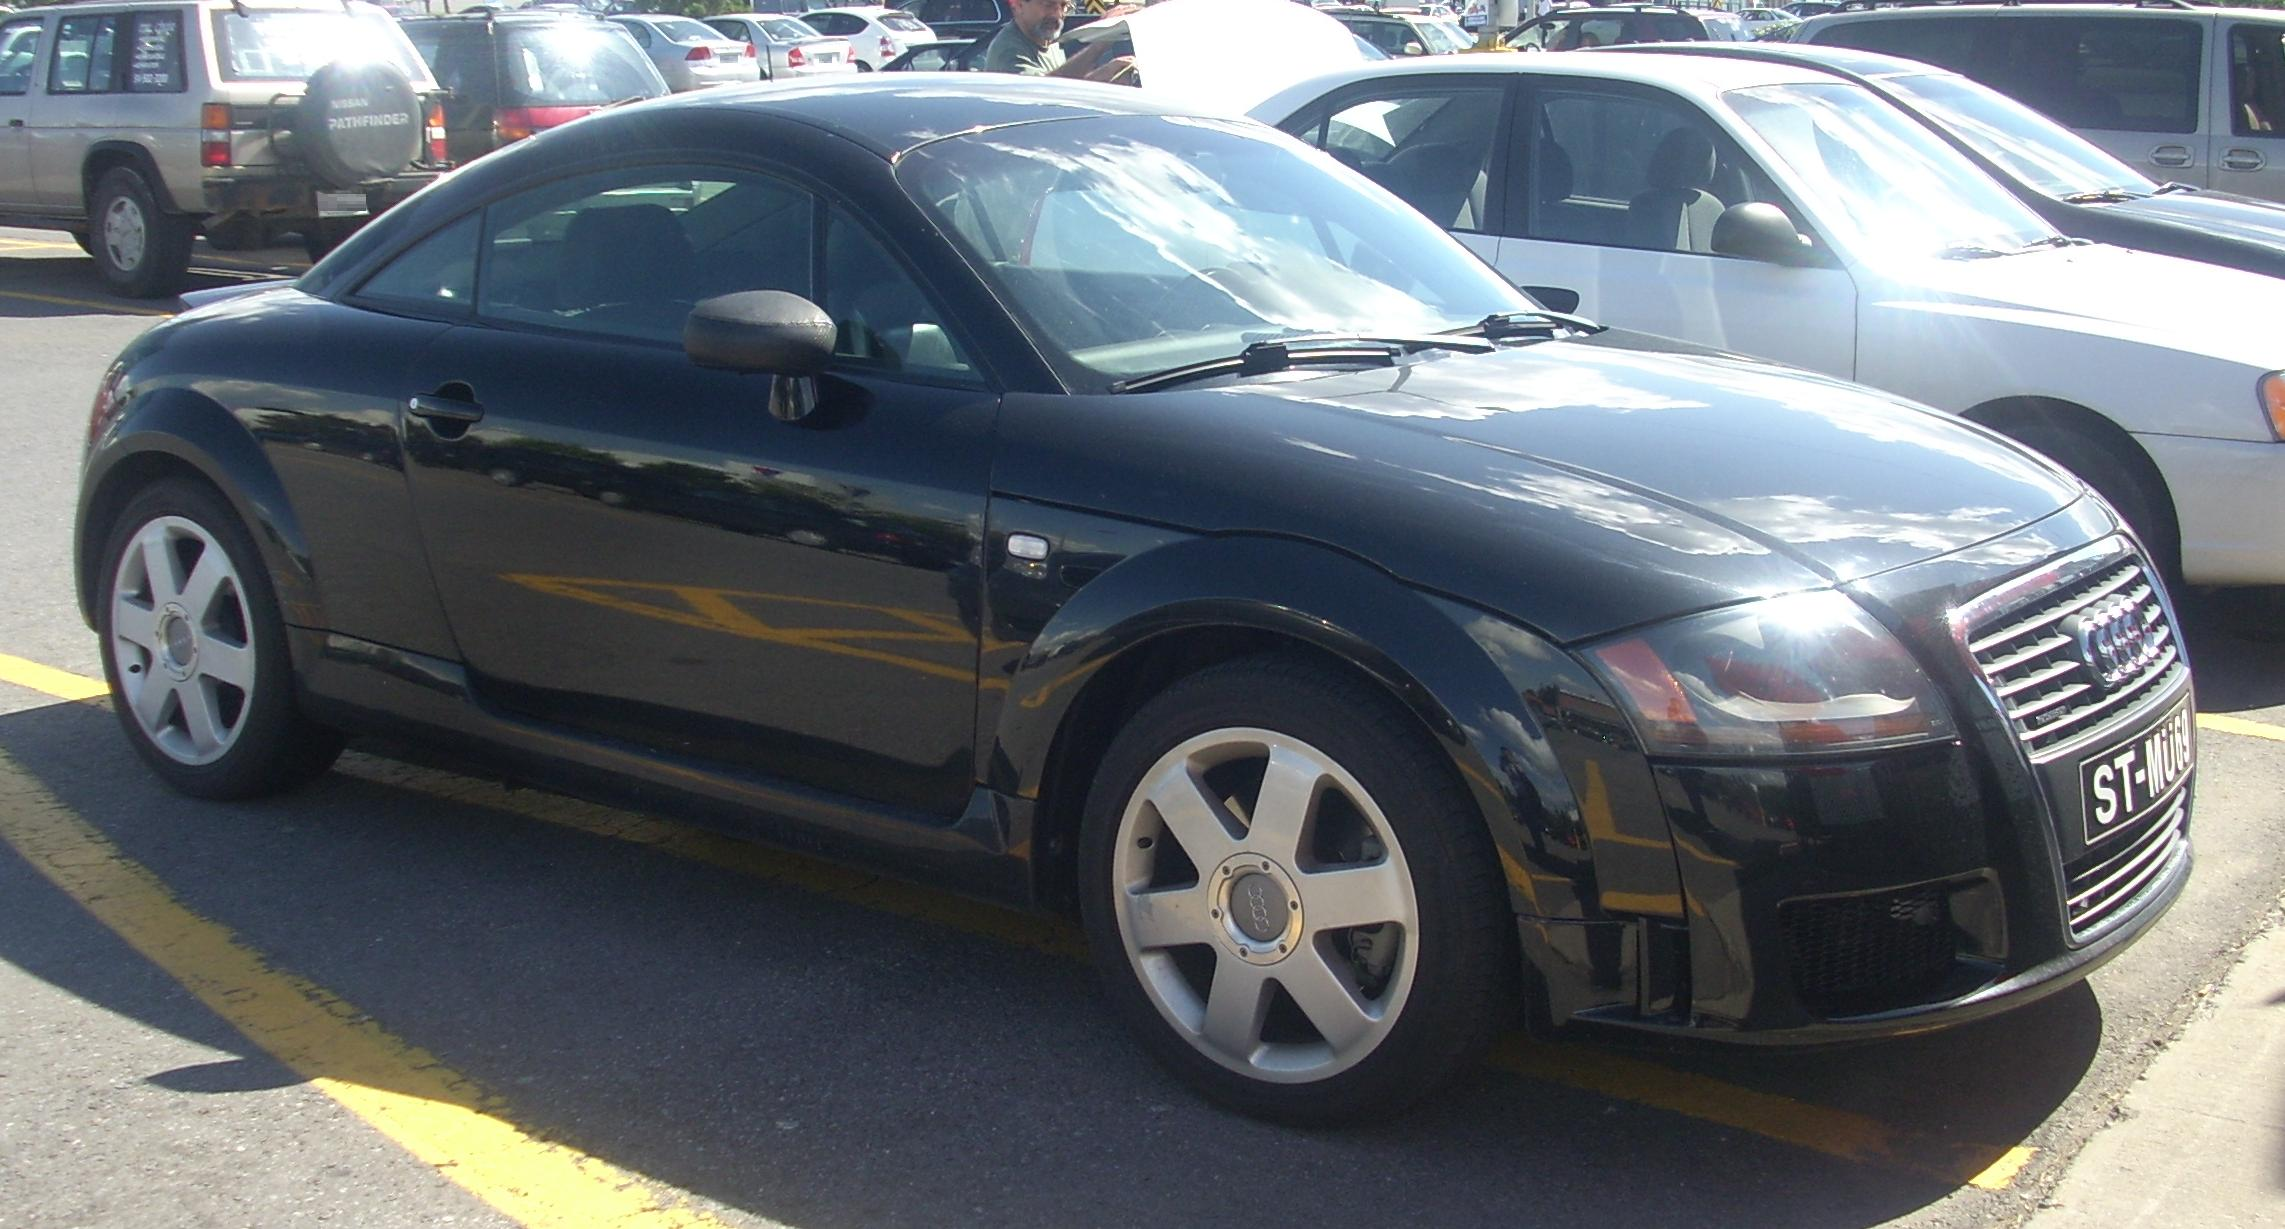 File 04 06 Audi Tt Jpg Wikimedia Commons